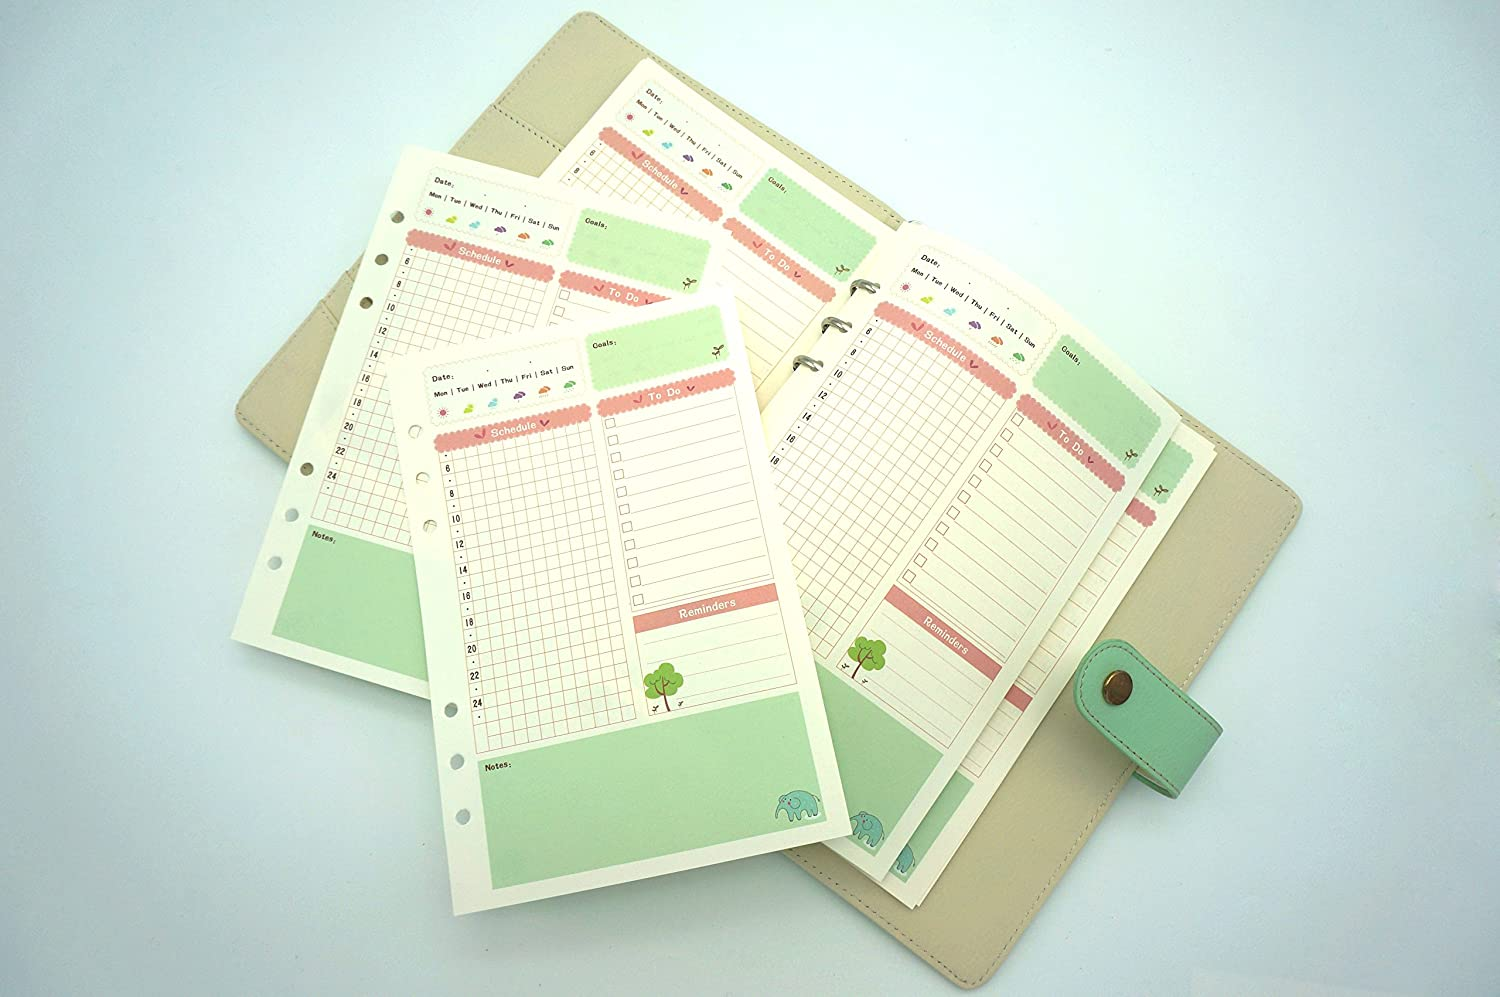 A5, 45 Sheets to do List Harphia 8.26x5.5 to do List Planner Refill,to Do Paper A5 Planner Inserts